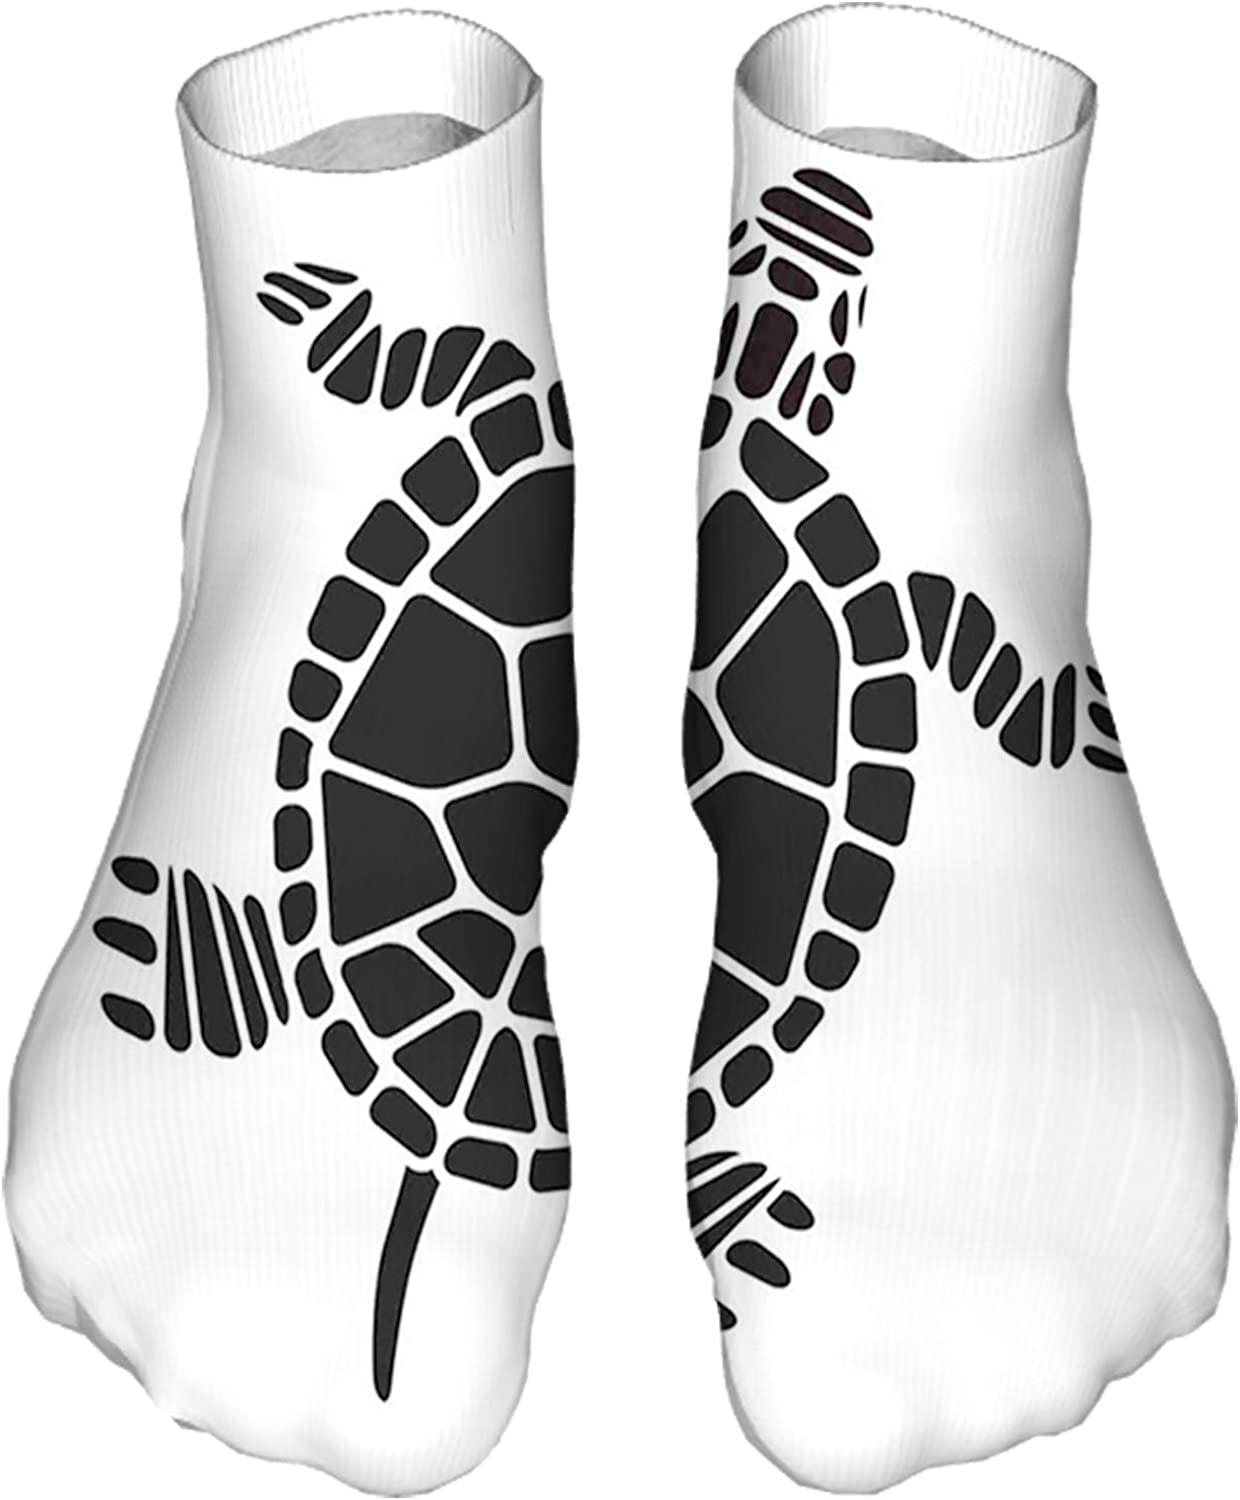 Women's Colorful Patterned Unisex Low Cut/No Show Socks,Geometric Shapes Forming Simplistic Design Mosaic Style